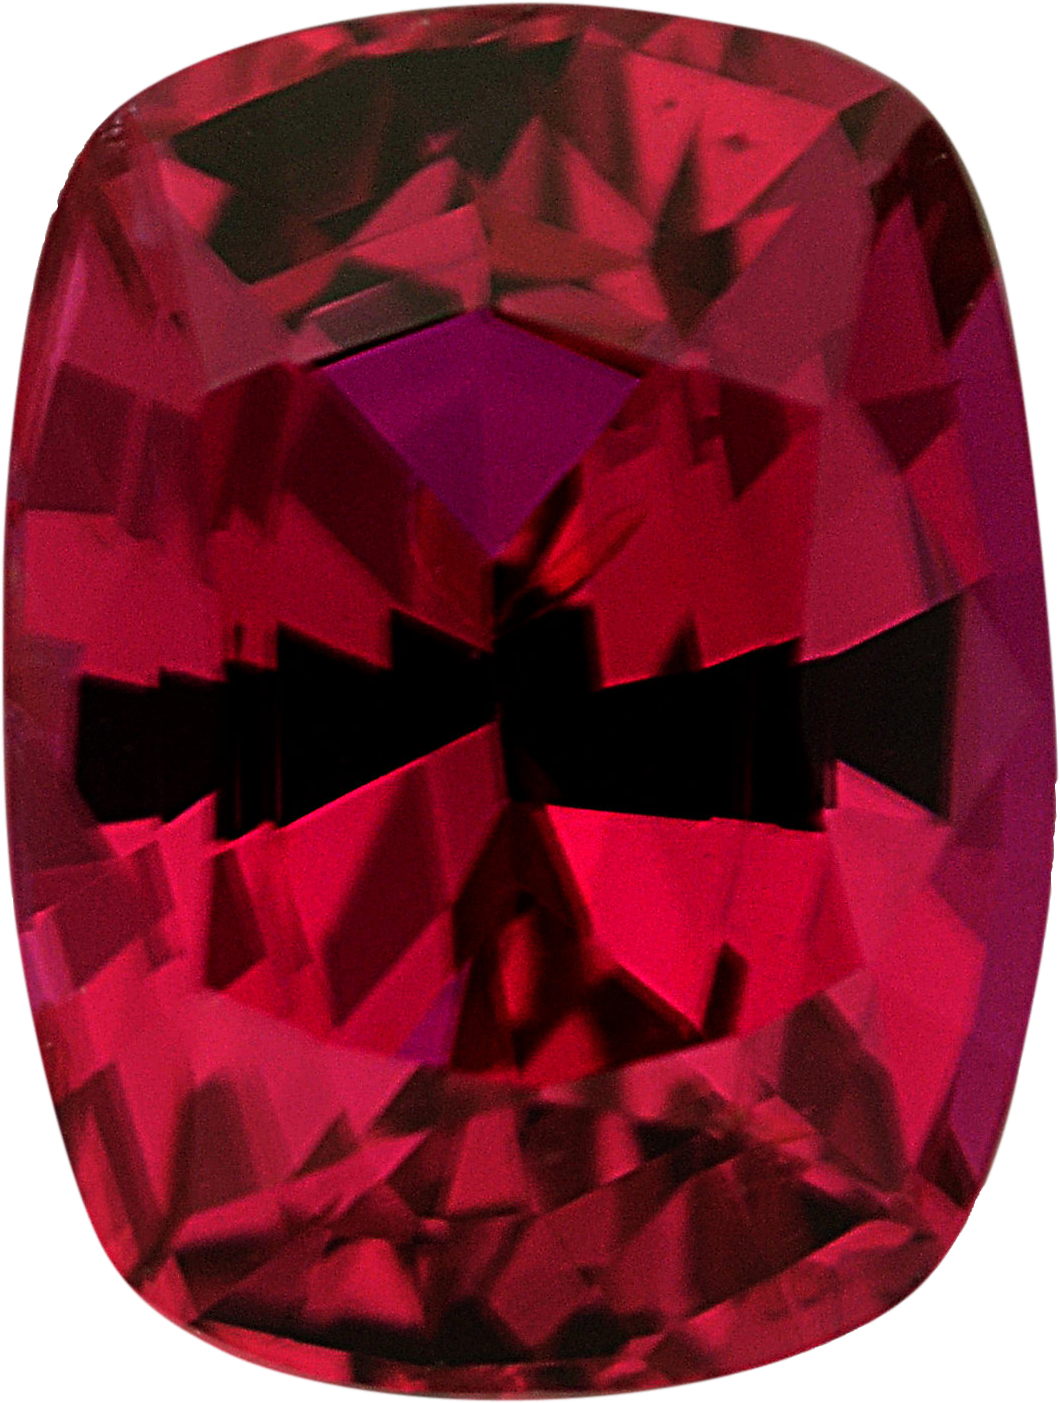 Unbelievable Cushion Cut Loose Ruby Gem,  Red Color, 7.25 x 5.51 mm, 1.48 carats